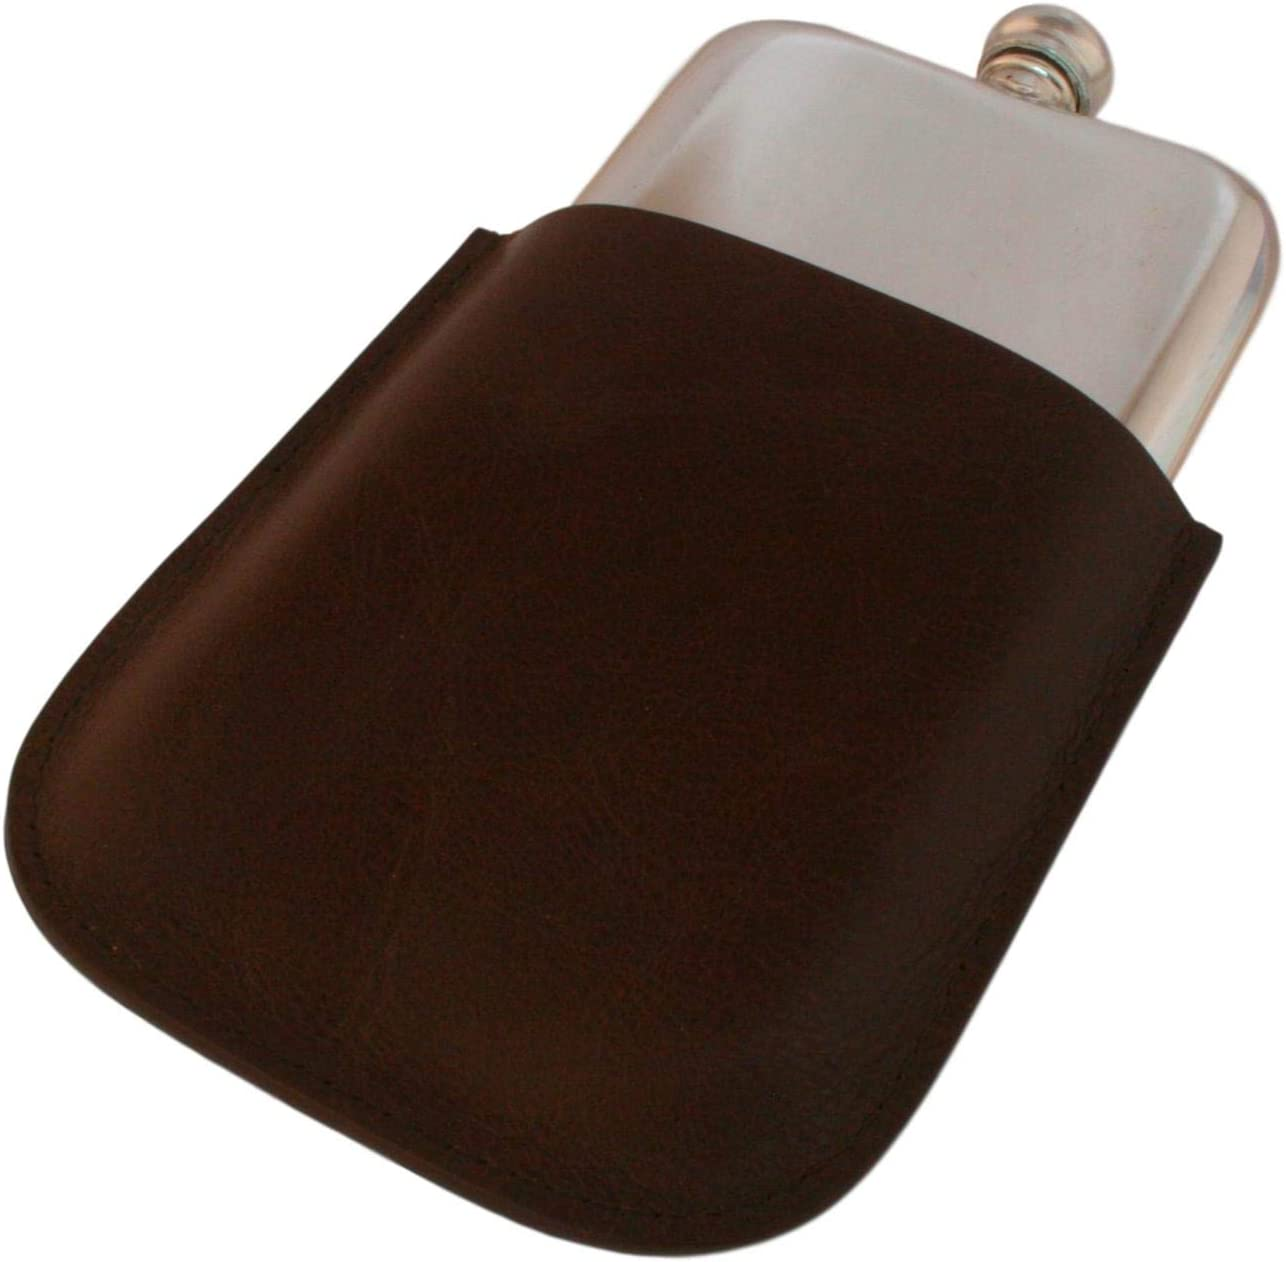 Gamekeepers Cottage gifts English Pewter 4 Oz Traditional Hip Flask In Brown Leather Pouch